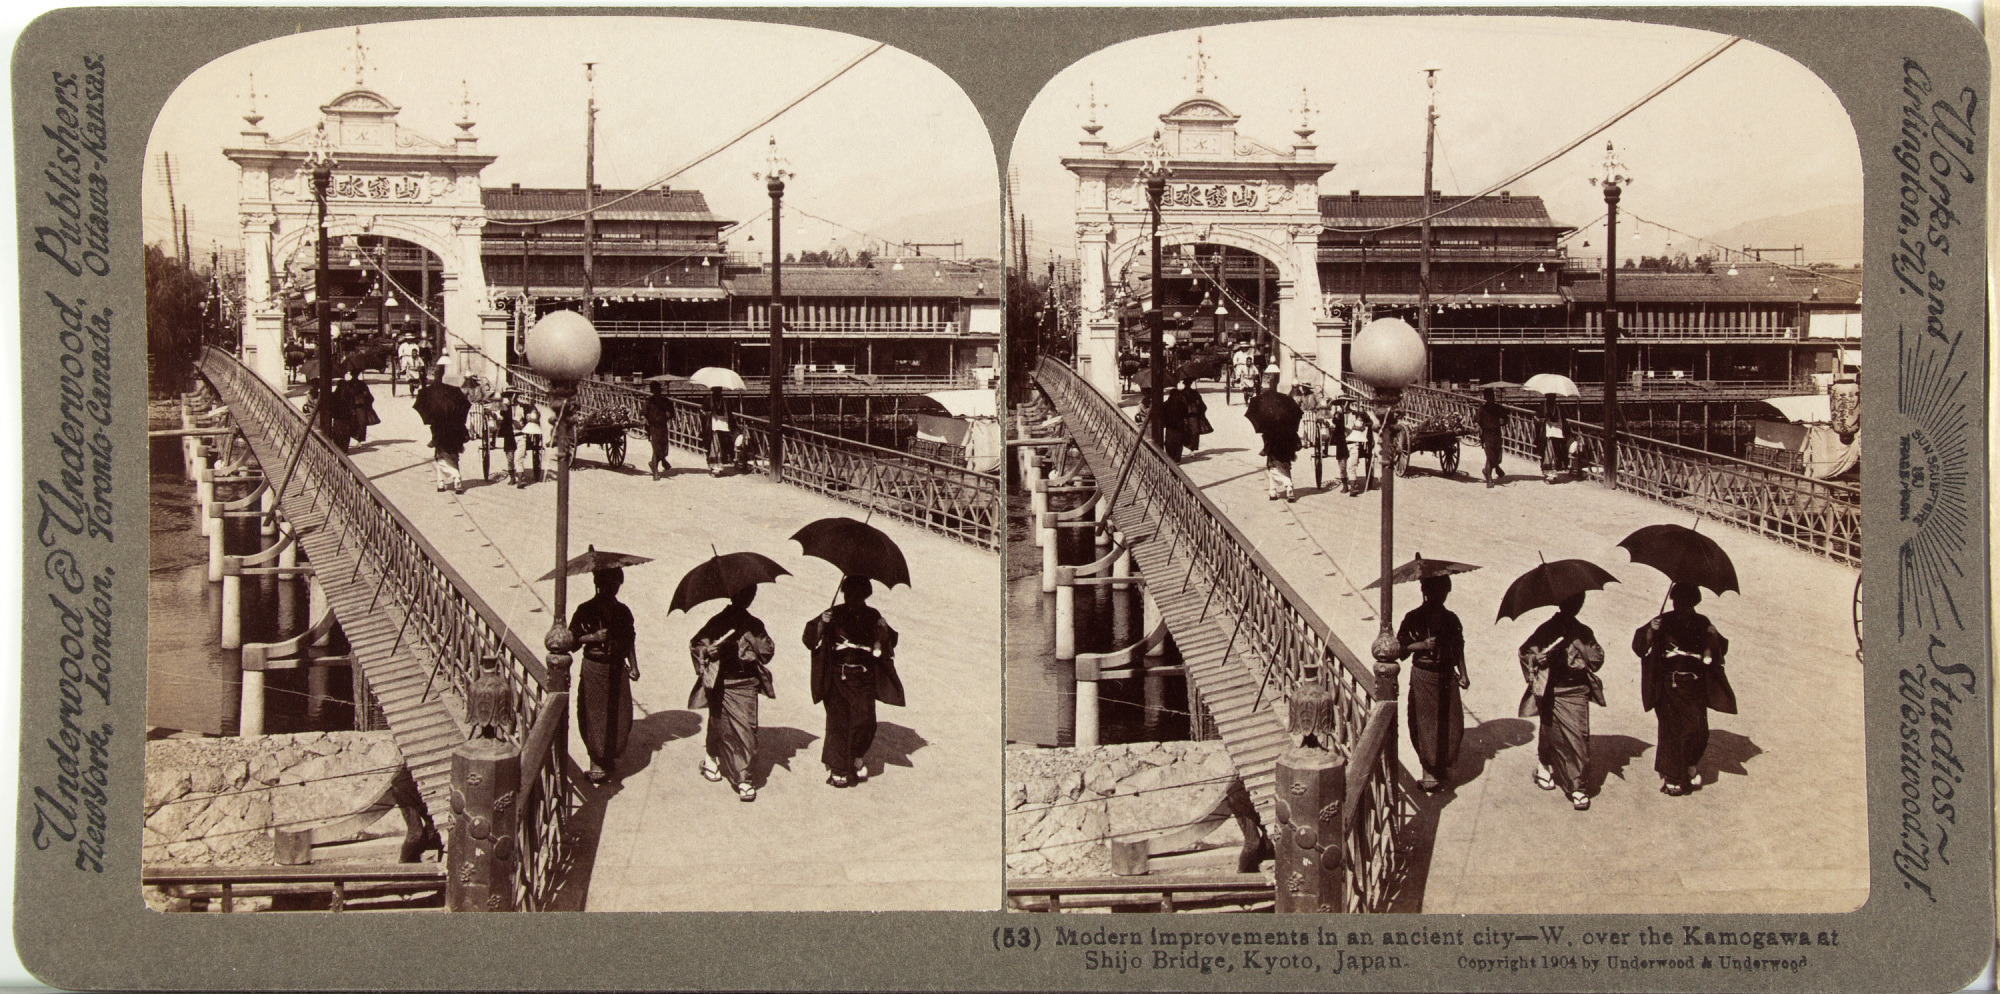 (53) Modern improvements in an ancient city - W. over the Kamogawa at Shijo Bridge, Kyoto, Japan, 1904 or earlier. graphic